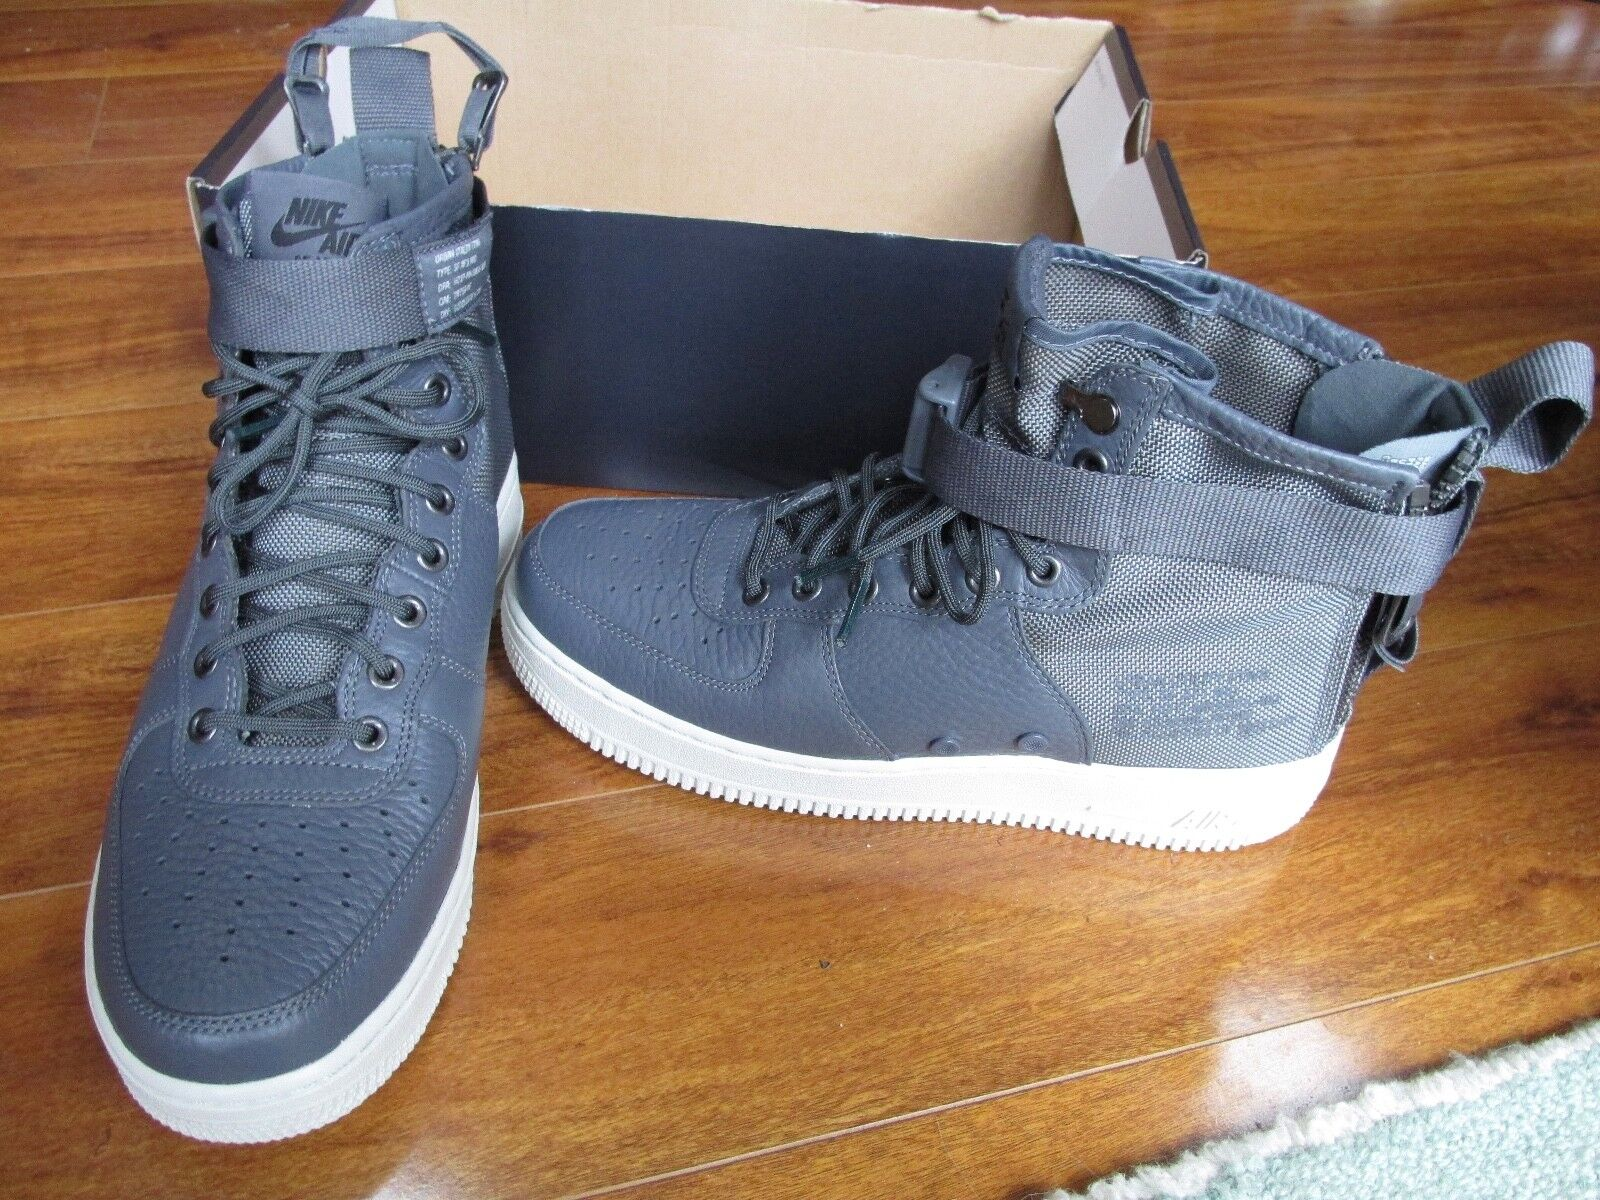 NEW NIKE SF AF1 MID Special Field Boot MENS Size 10 Dark Grey 917753 004 160.